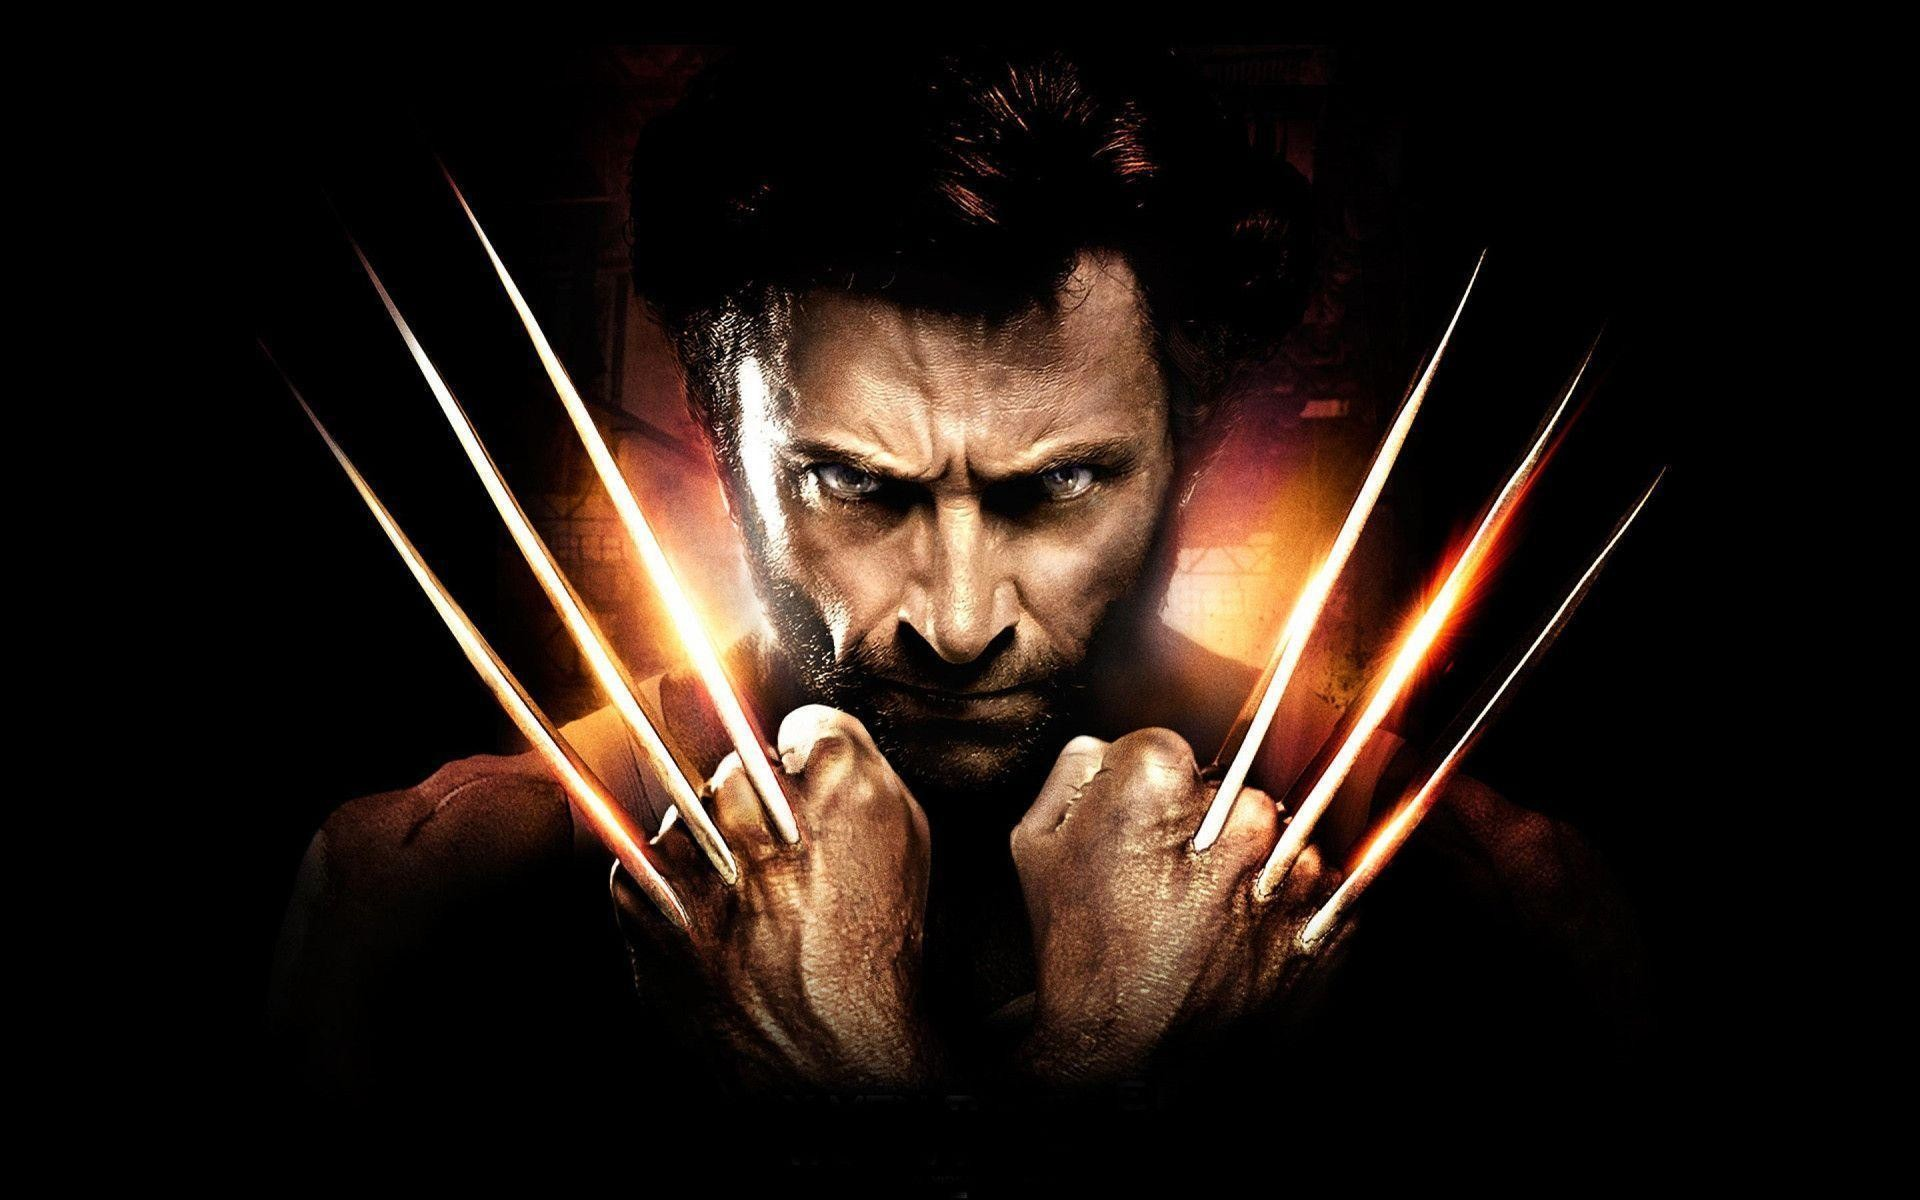 1920x1200 Hugh Jackman as Wolverine Wallpapers | HD Wallpapers